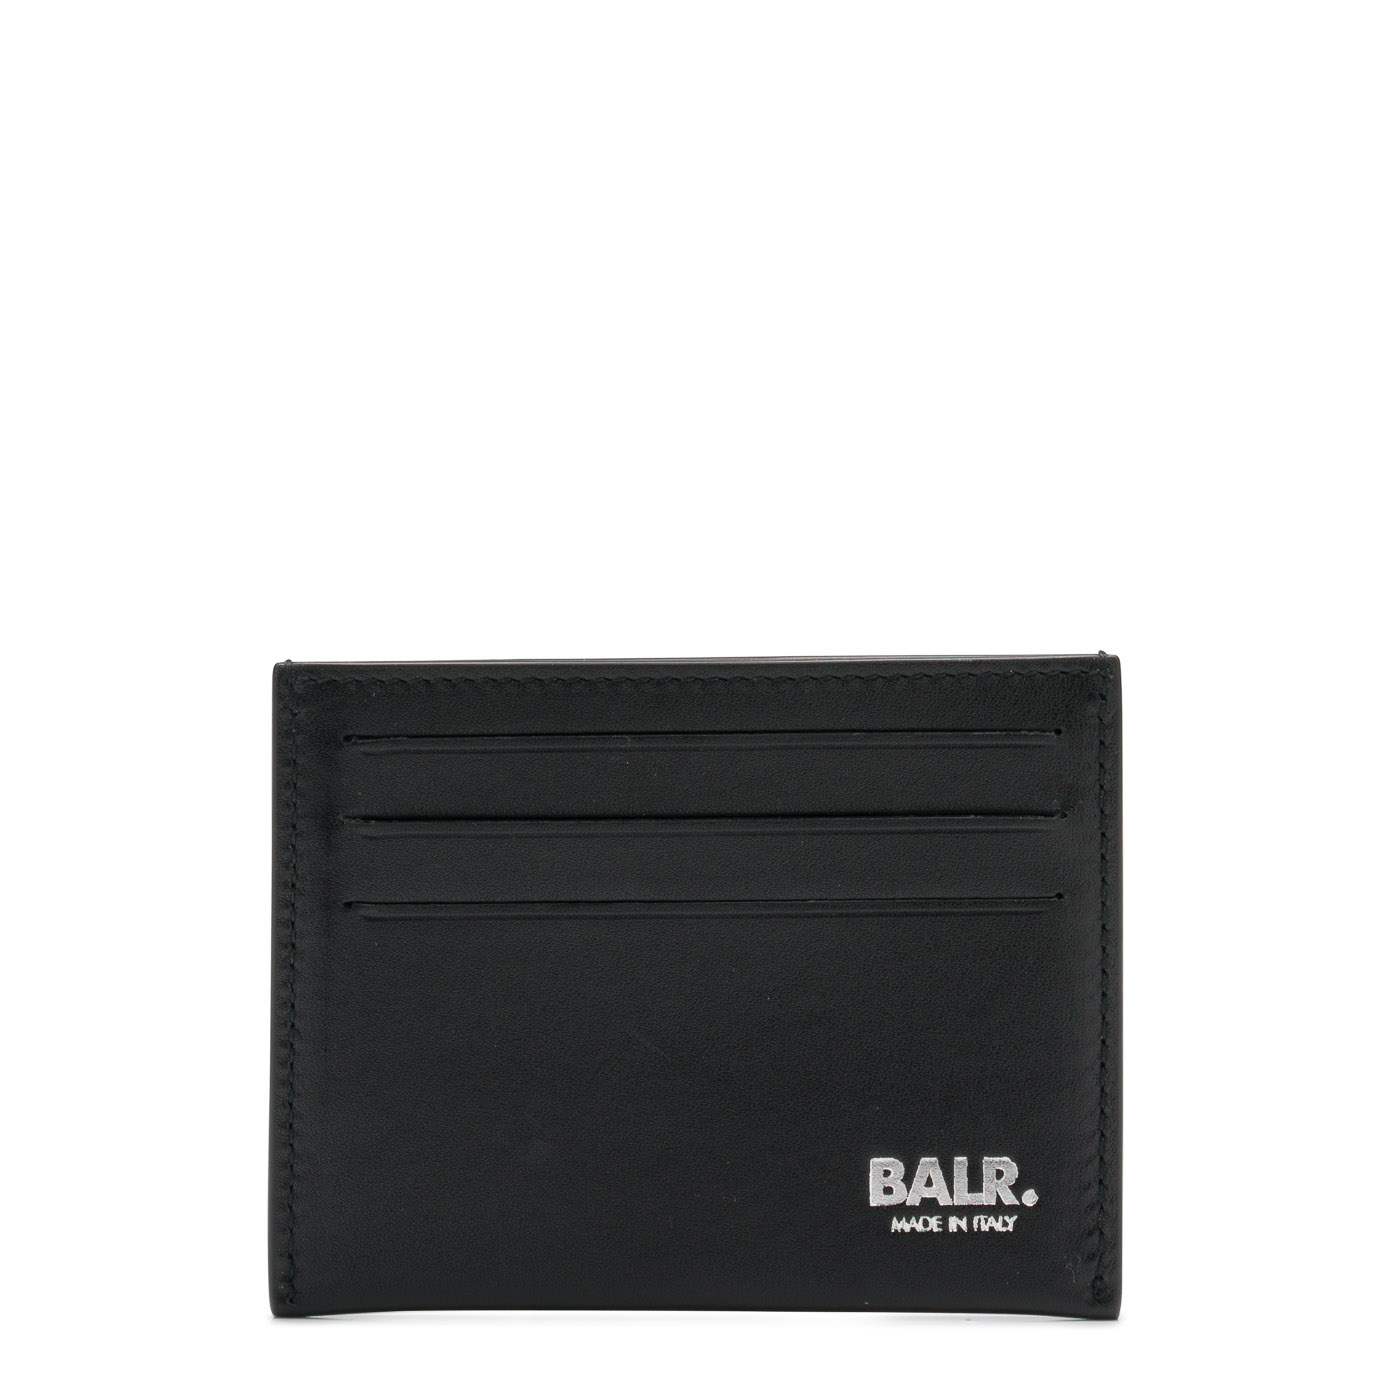 Bilde av BALR. Black Leather Slim Wallet 8719777007892